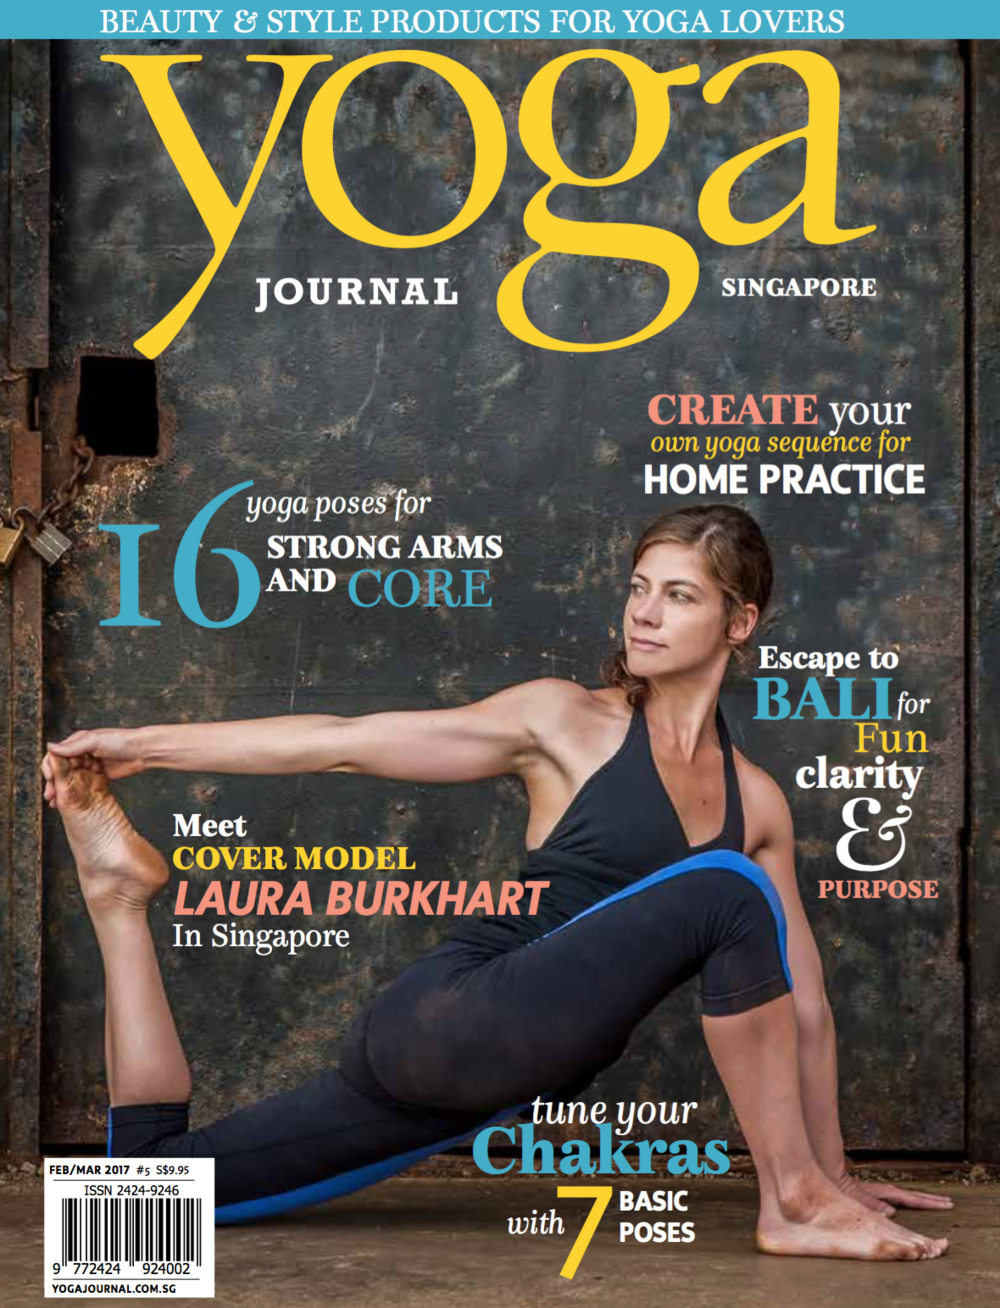 Image source from  Yoga Journal Singapore.